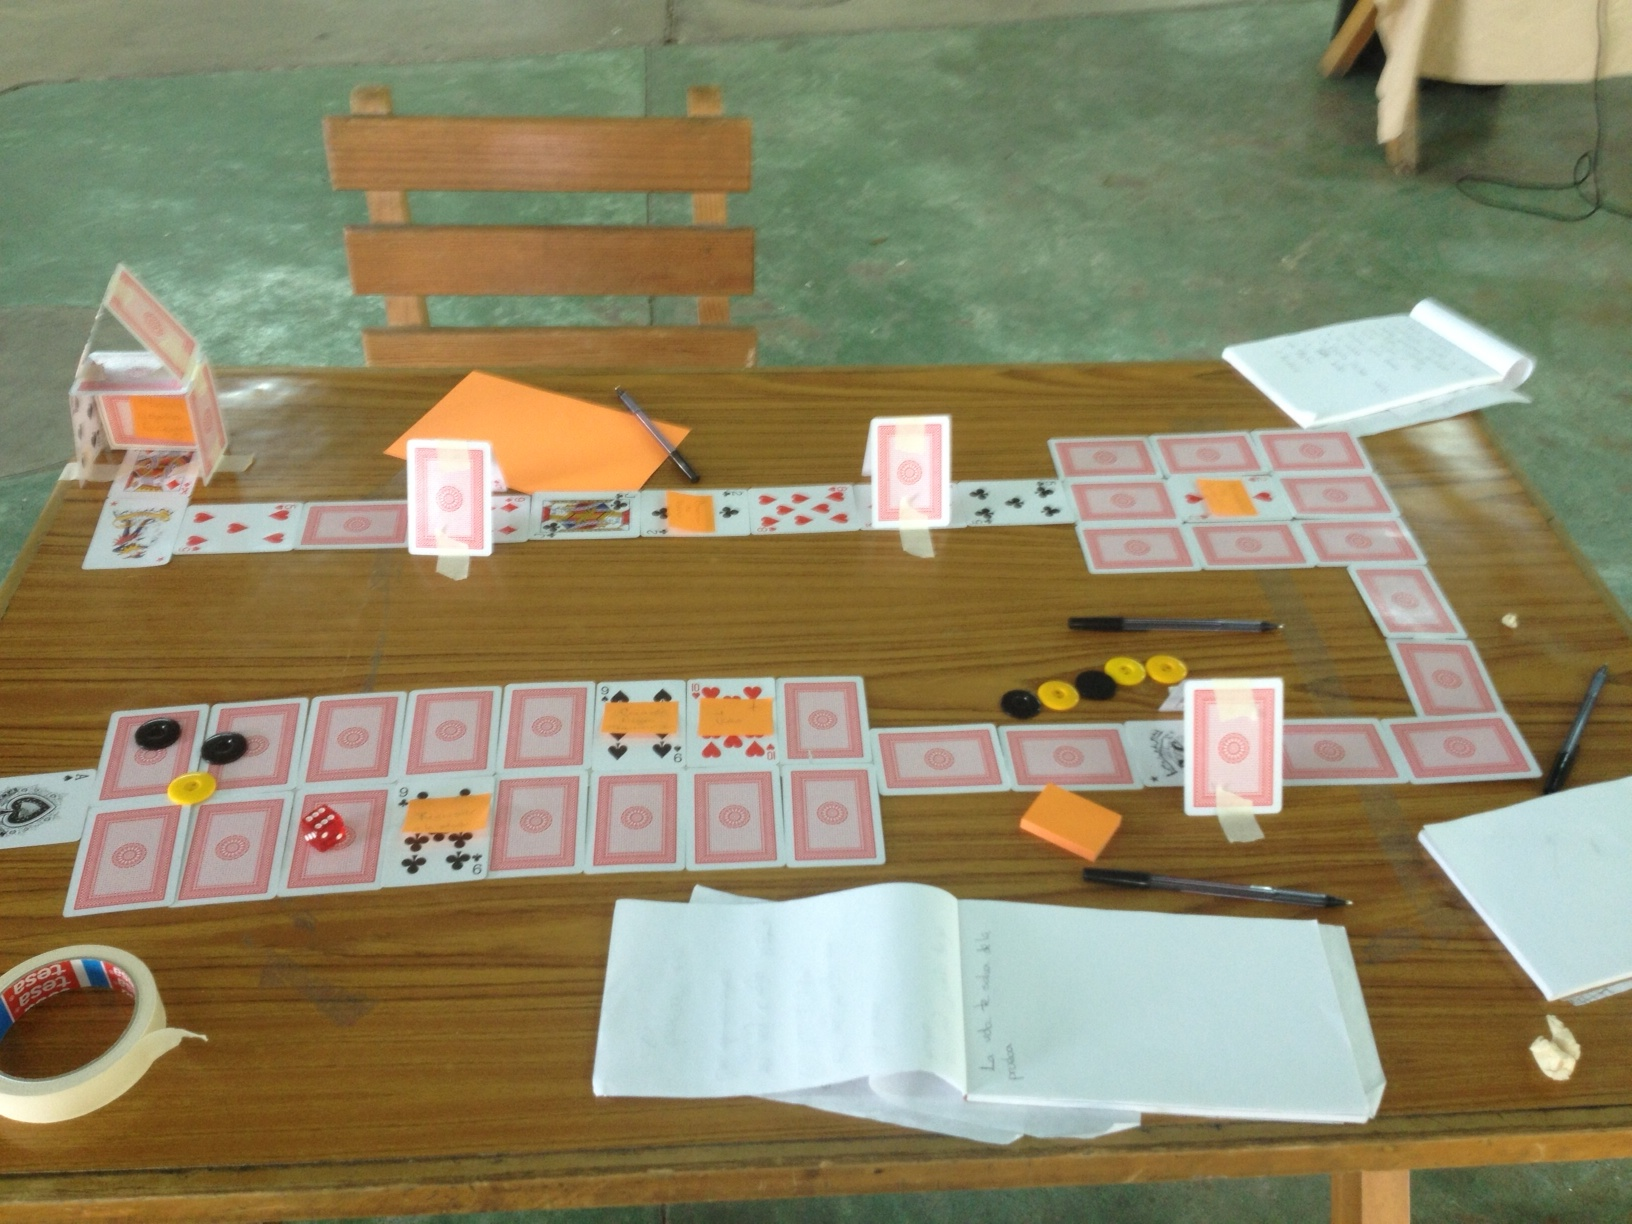 An early prototype repurposing a deck of cards as a shifting game board